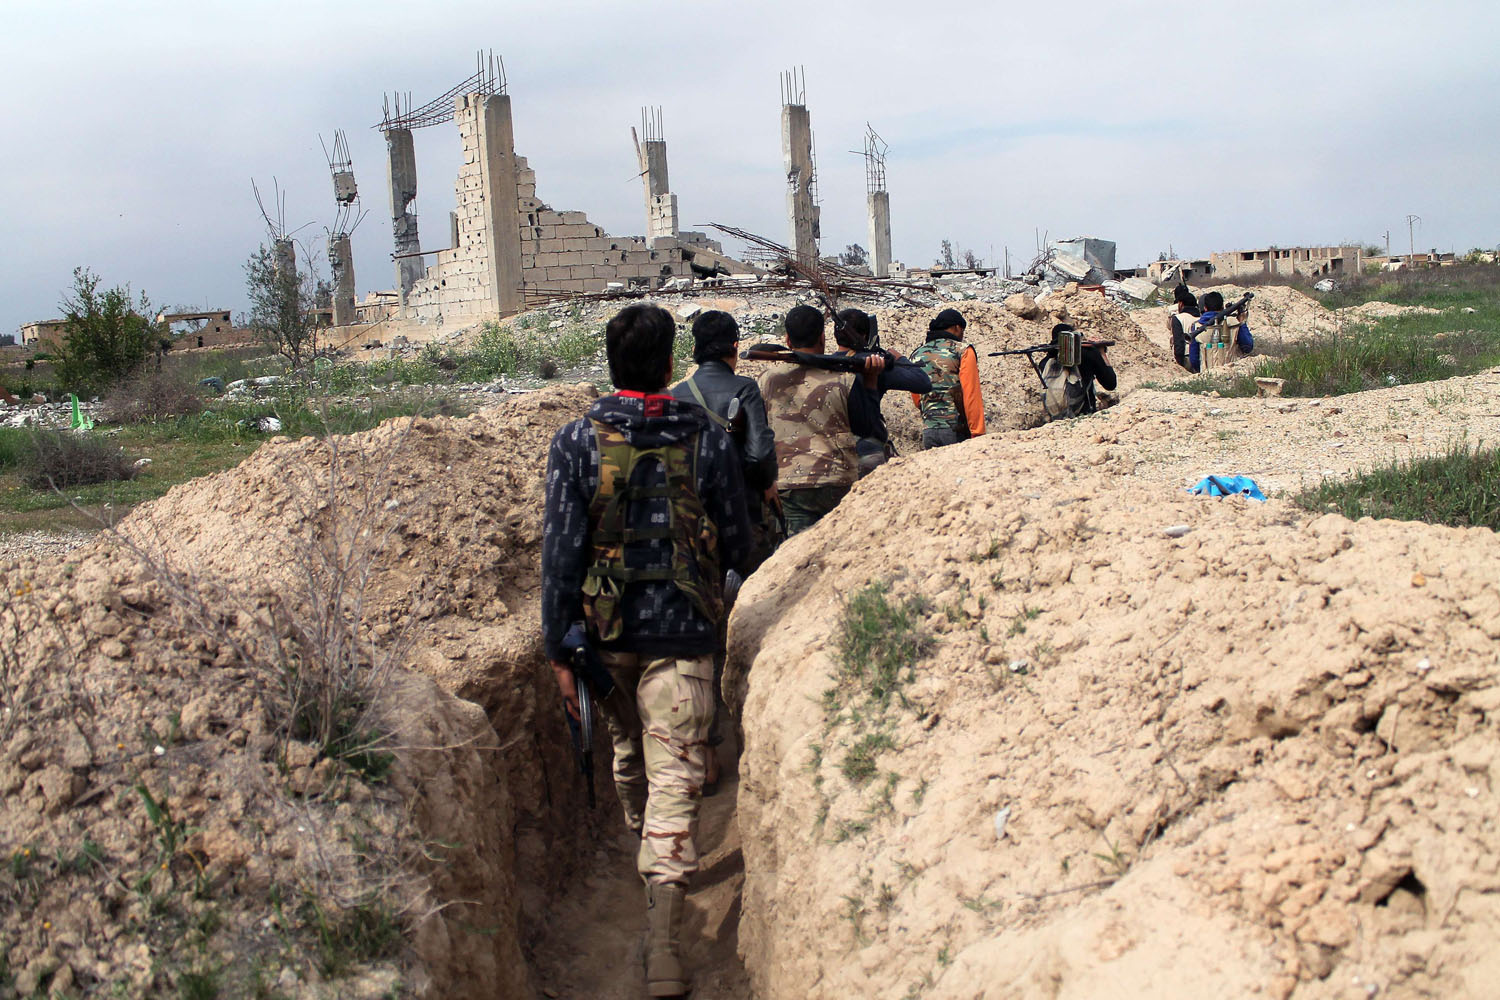 Mar. 24, 2014. Rebel fighters carry their weapons as they walk along a trench in the northeastern city of Deir Ezzor. Fighting with pro-regime fighters continues as more than 146,000 people have died in the three-years and millions more have been displaced.